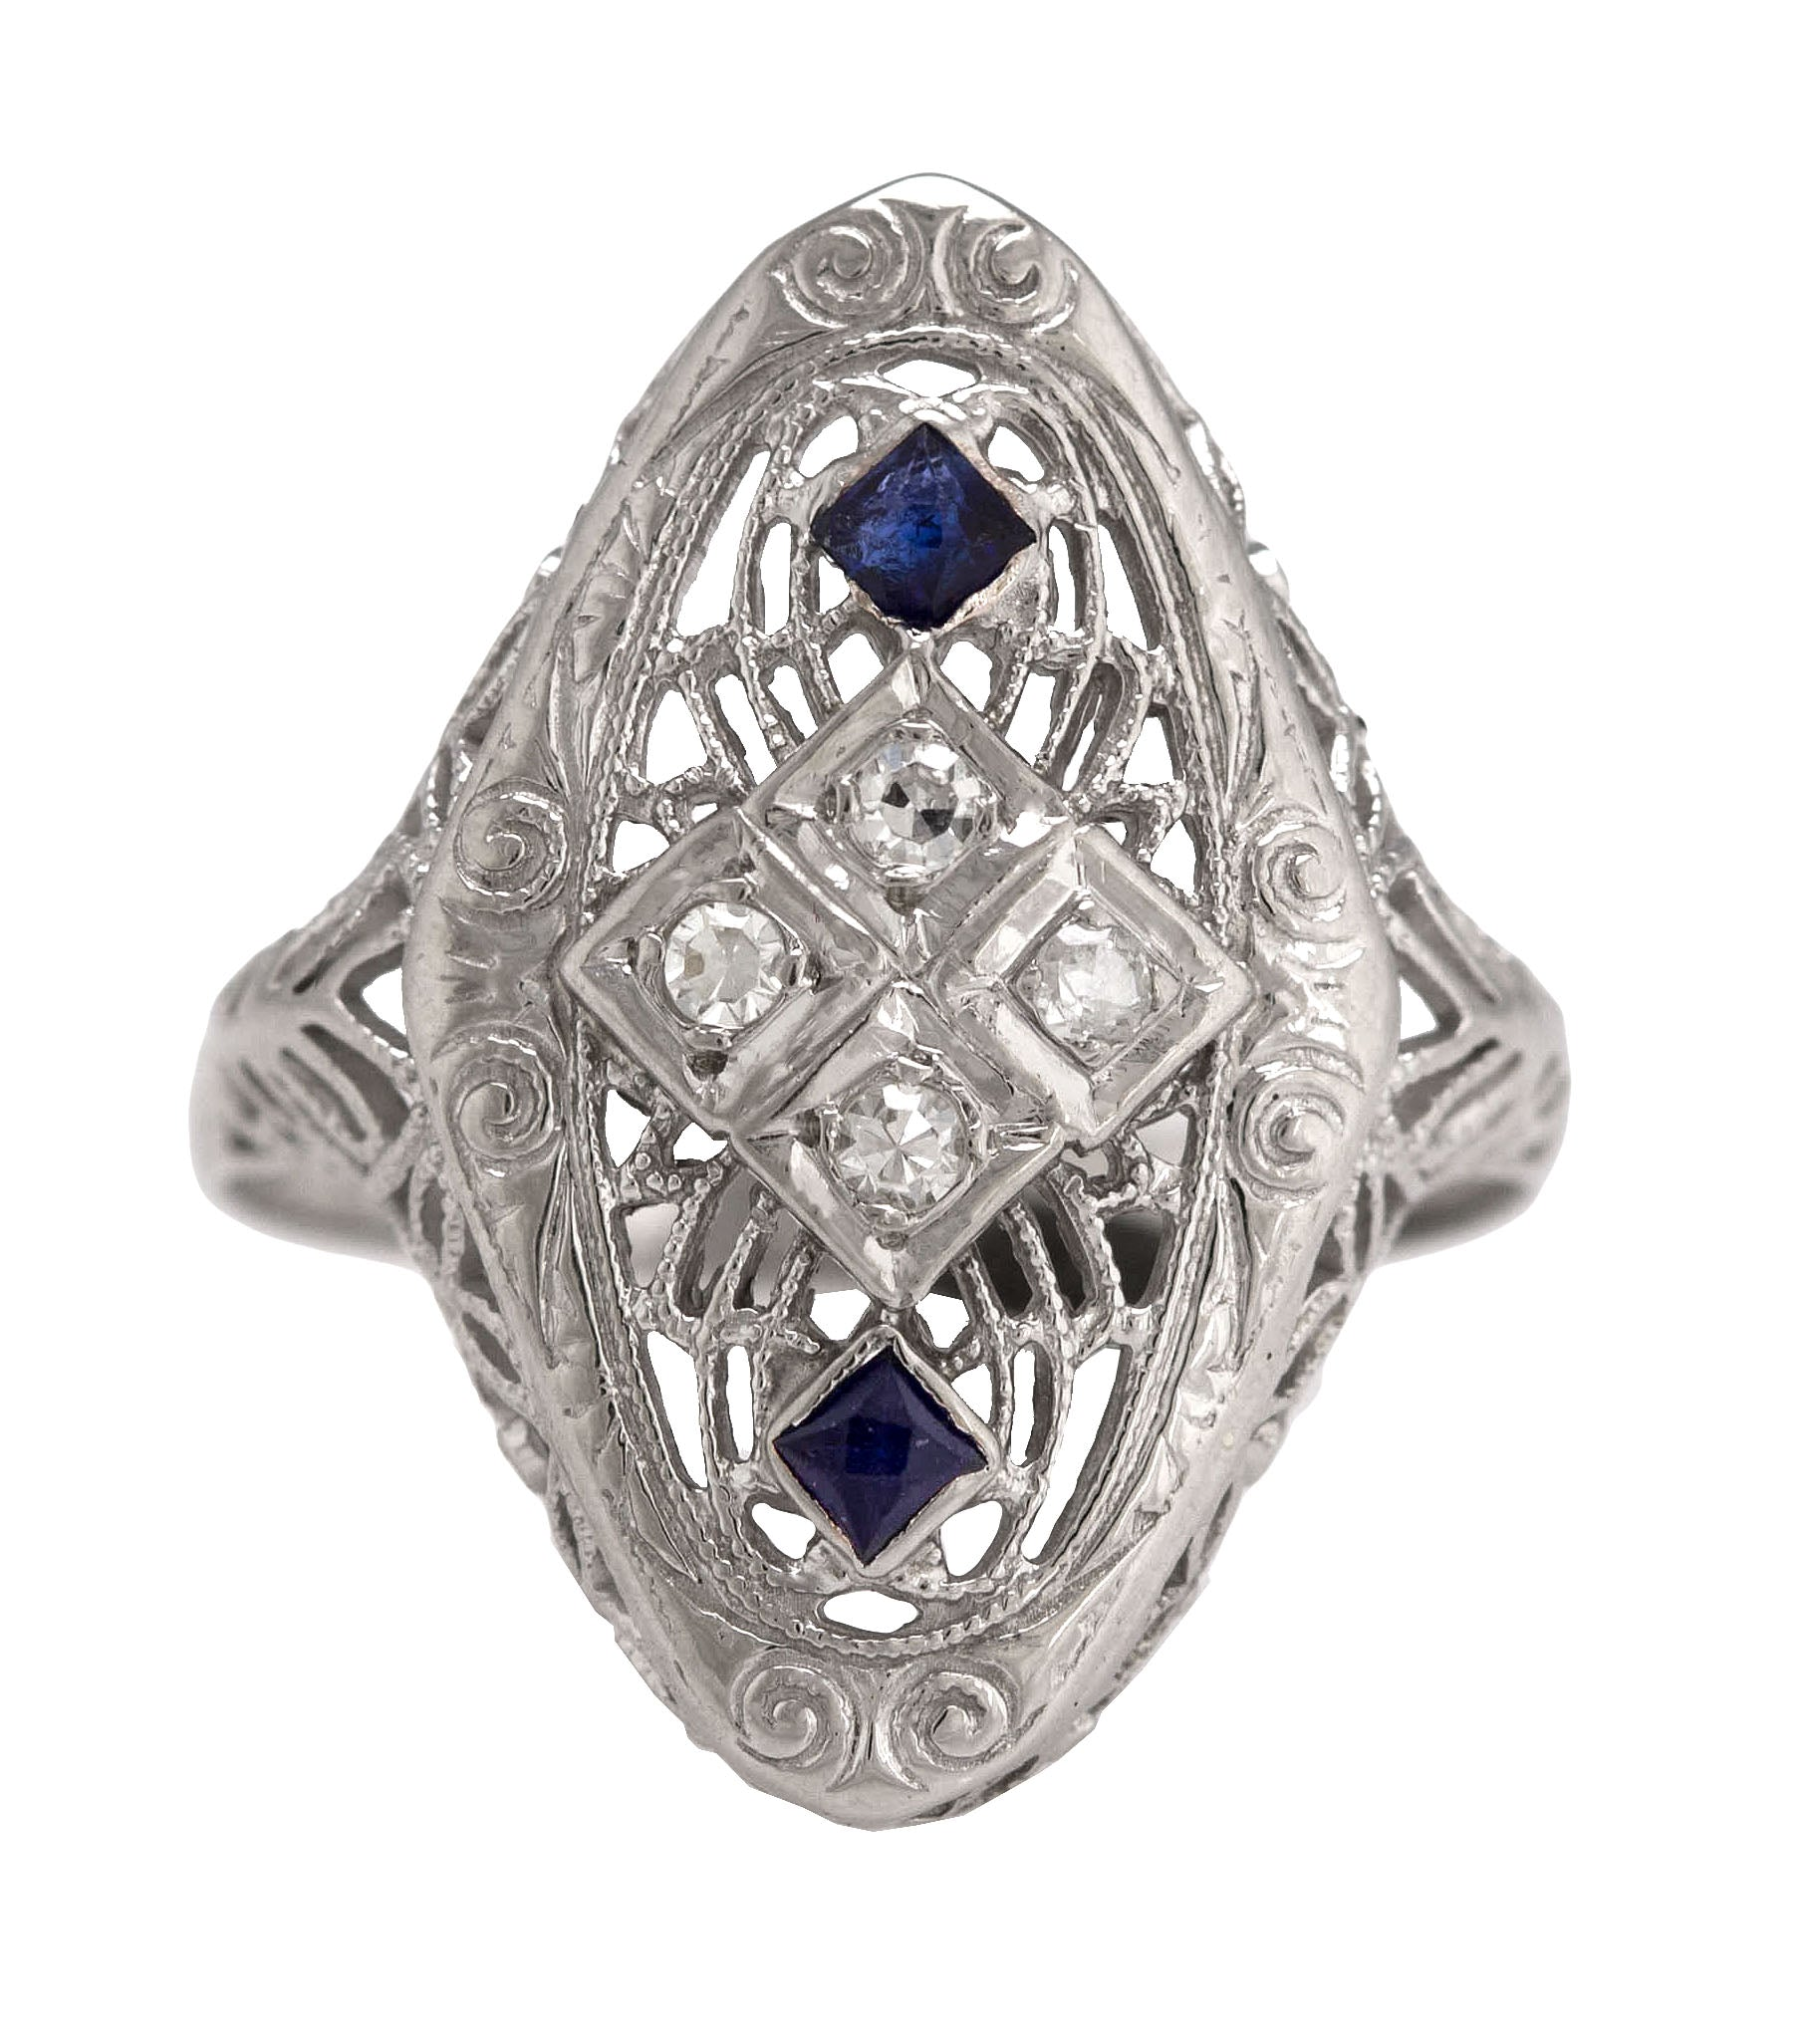 1930s Antique Art Deco 14k White Gold .14ctw Diamond Blue Sapphire Filigree Ring